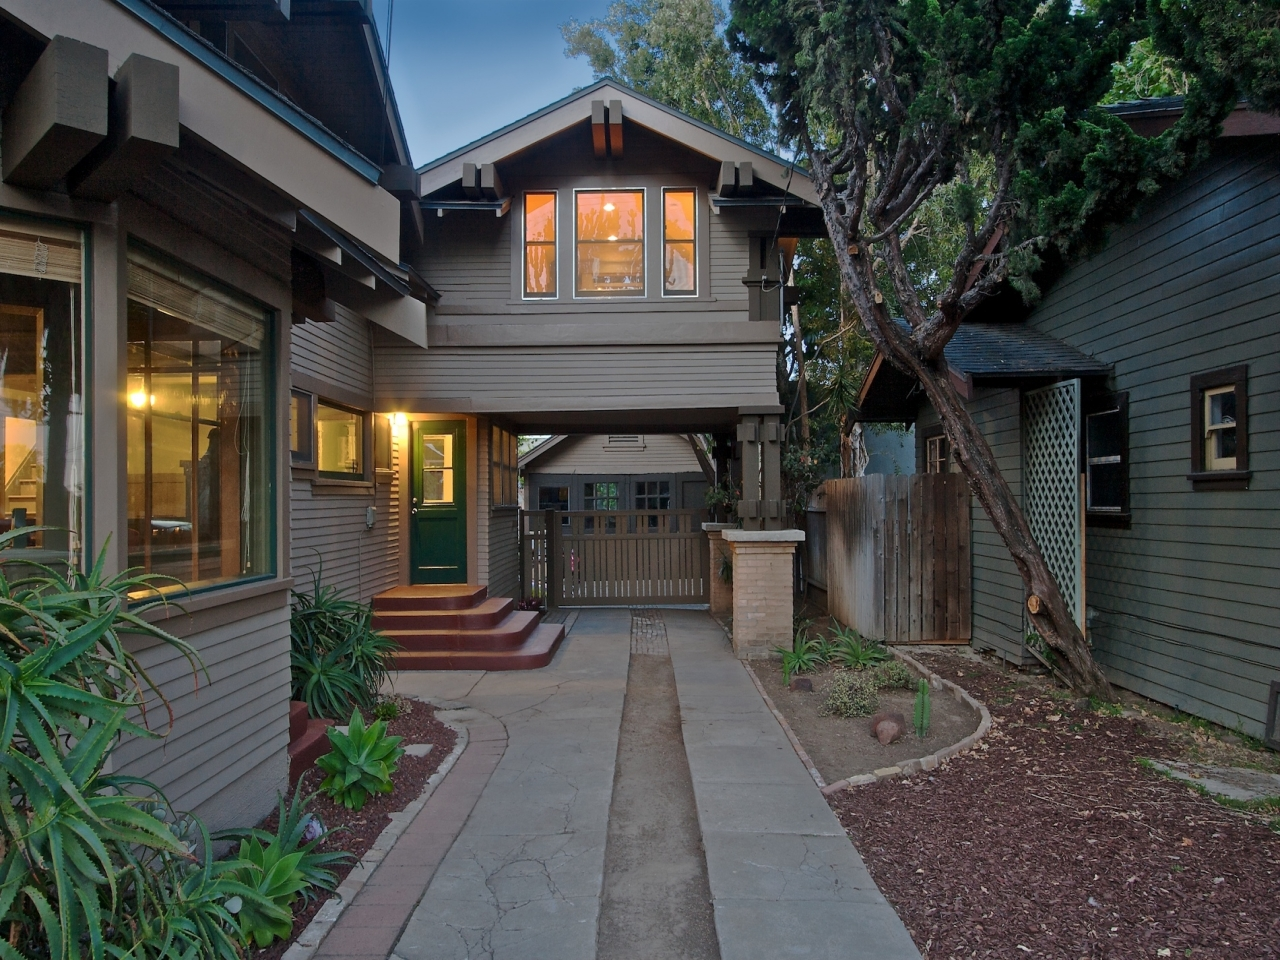 California craftsman bungalow style homes california for California bungalow house